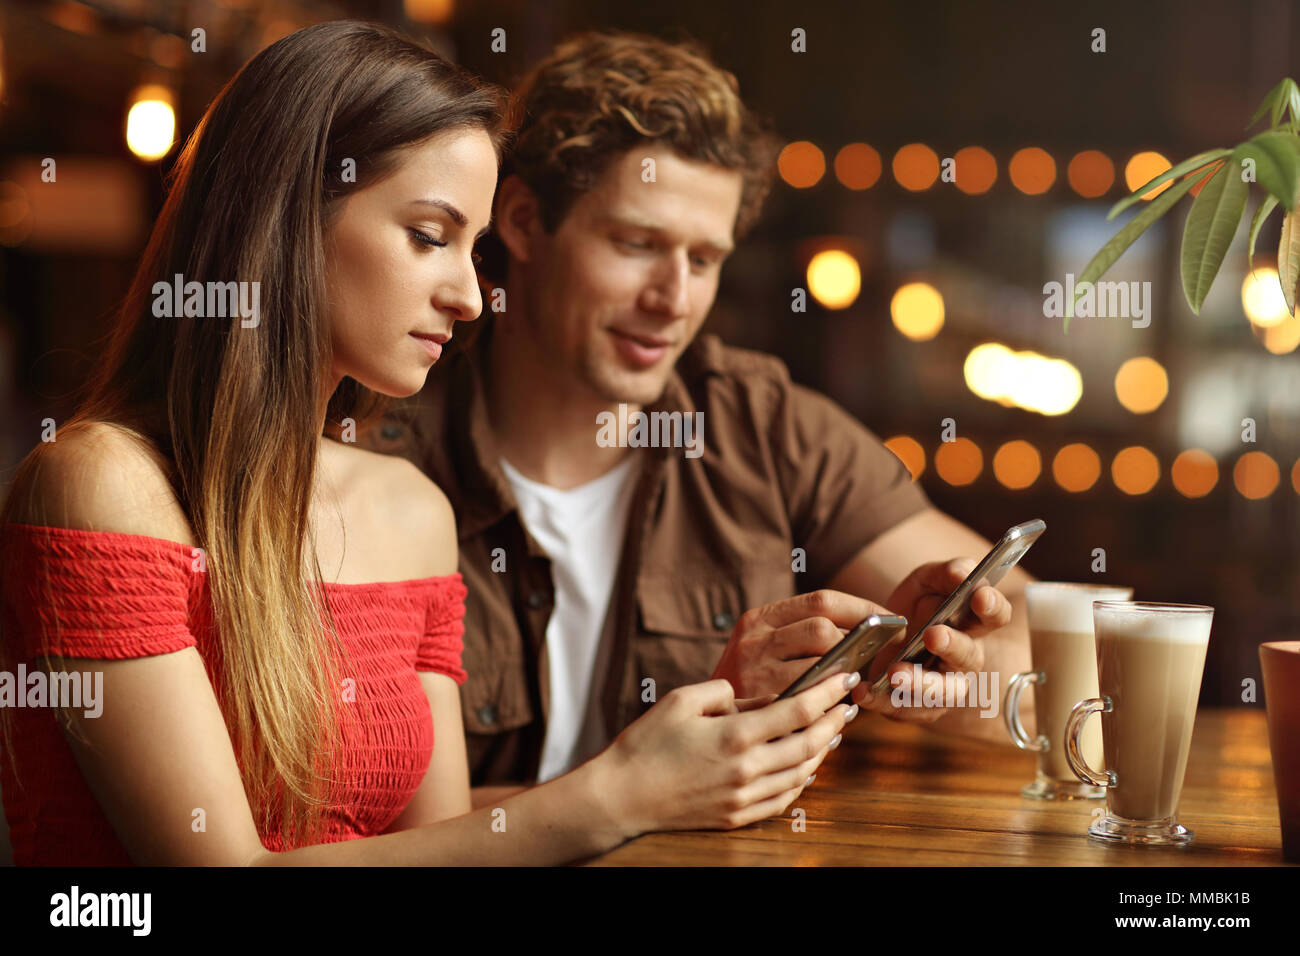 Cute couple on a date at the cafe - Stock Image